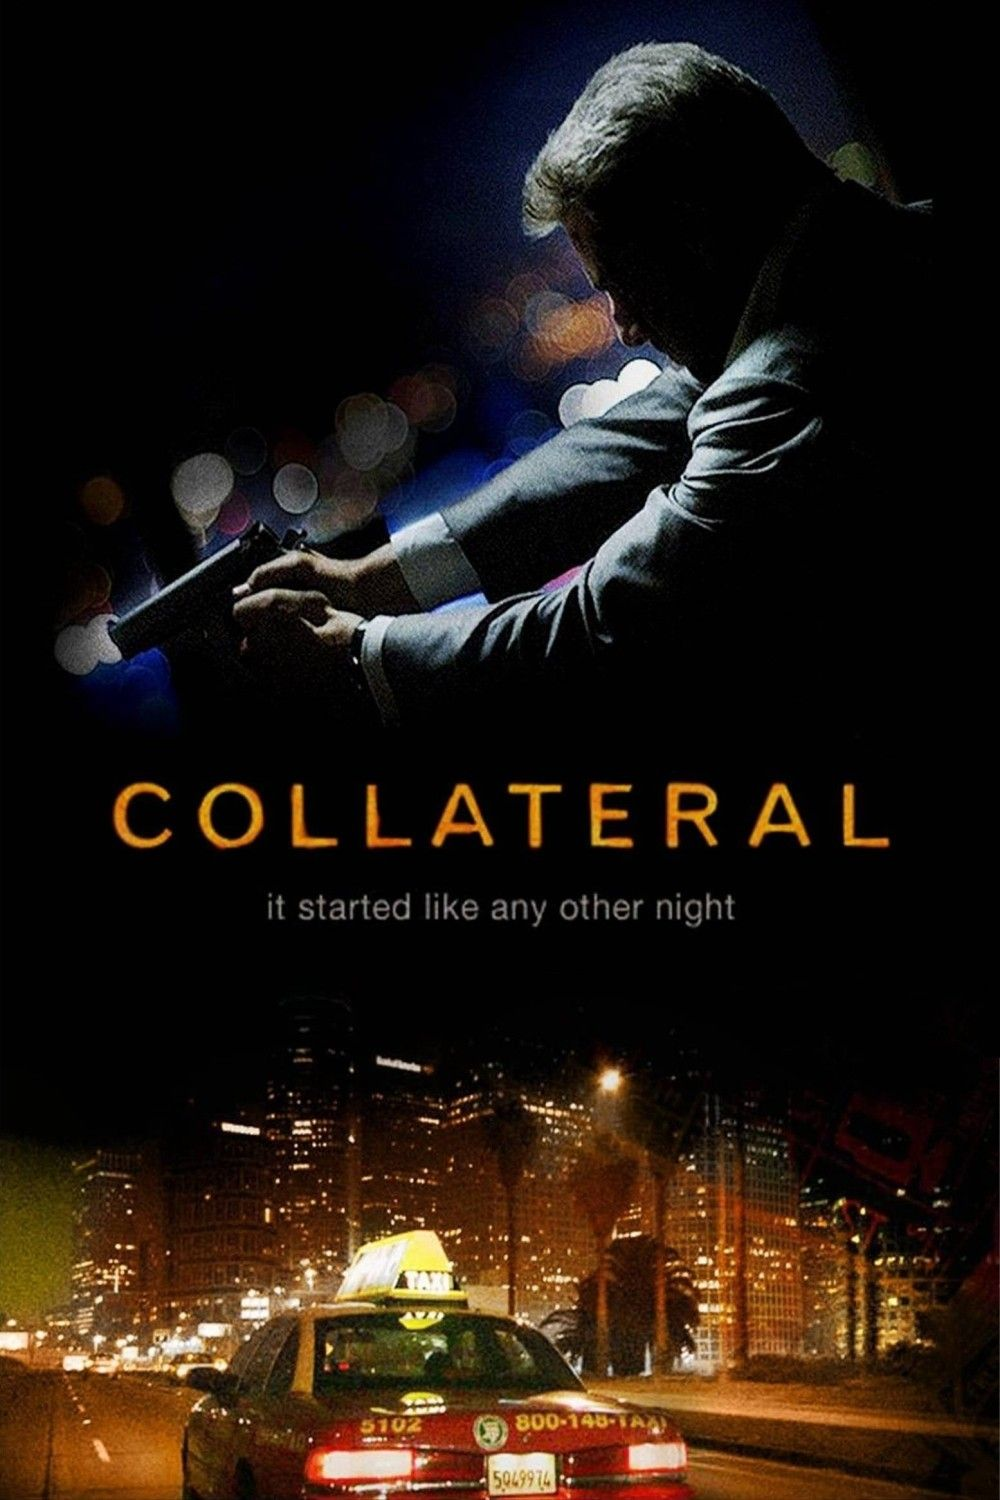 Collateral 2004 Movie Posters German Movies Full Movies Online Free